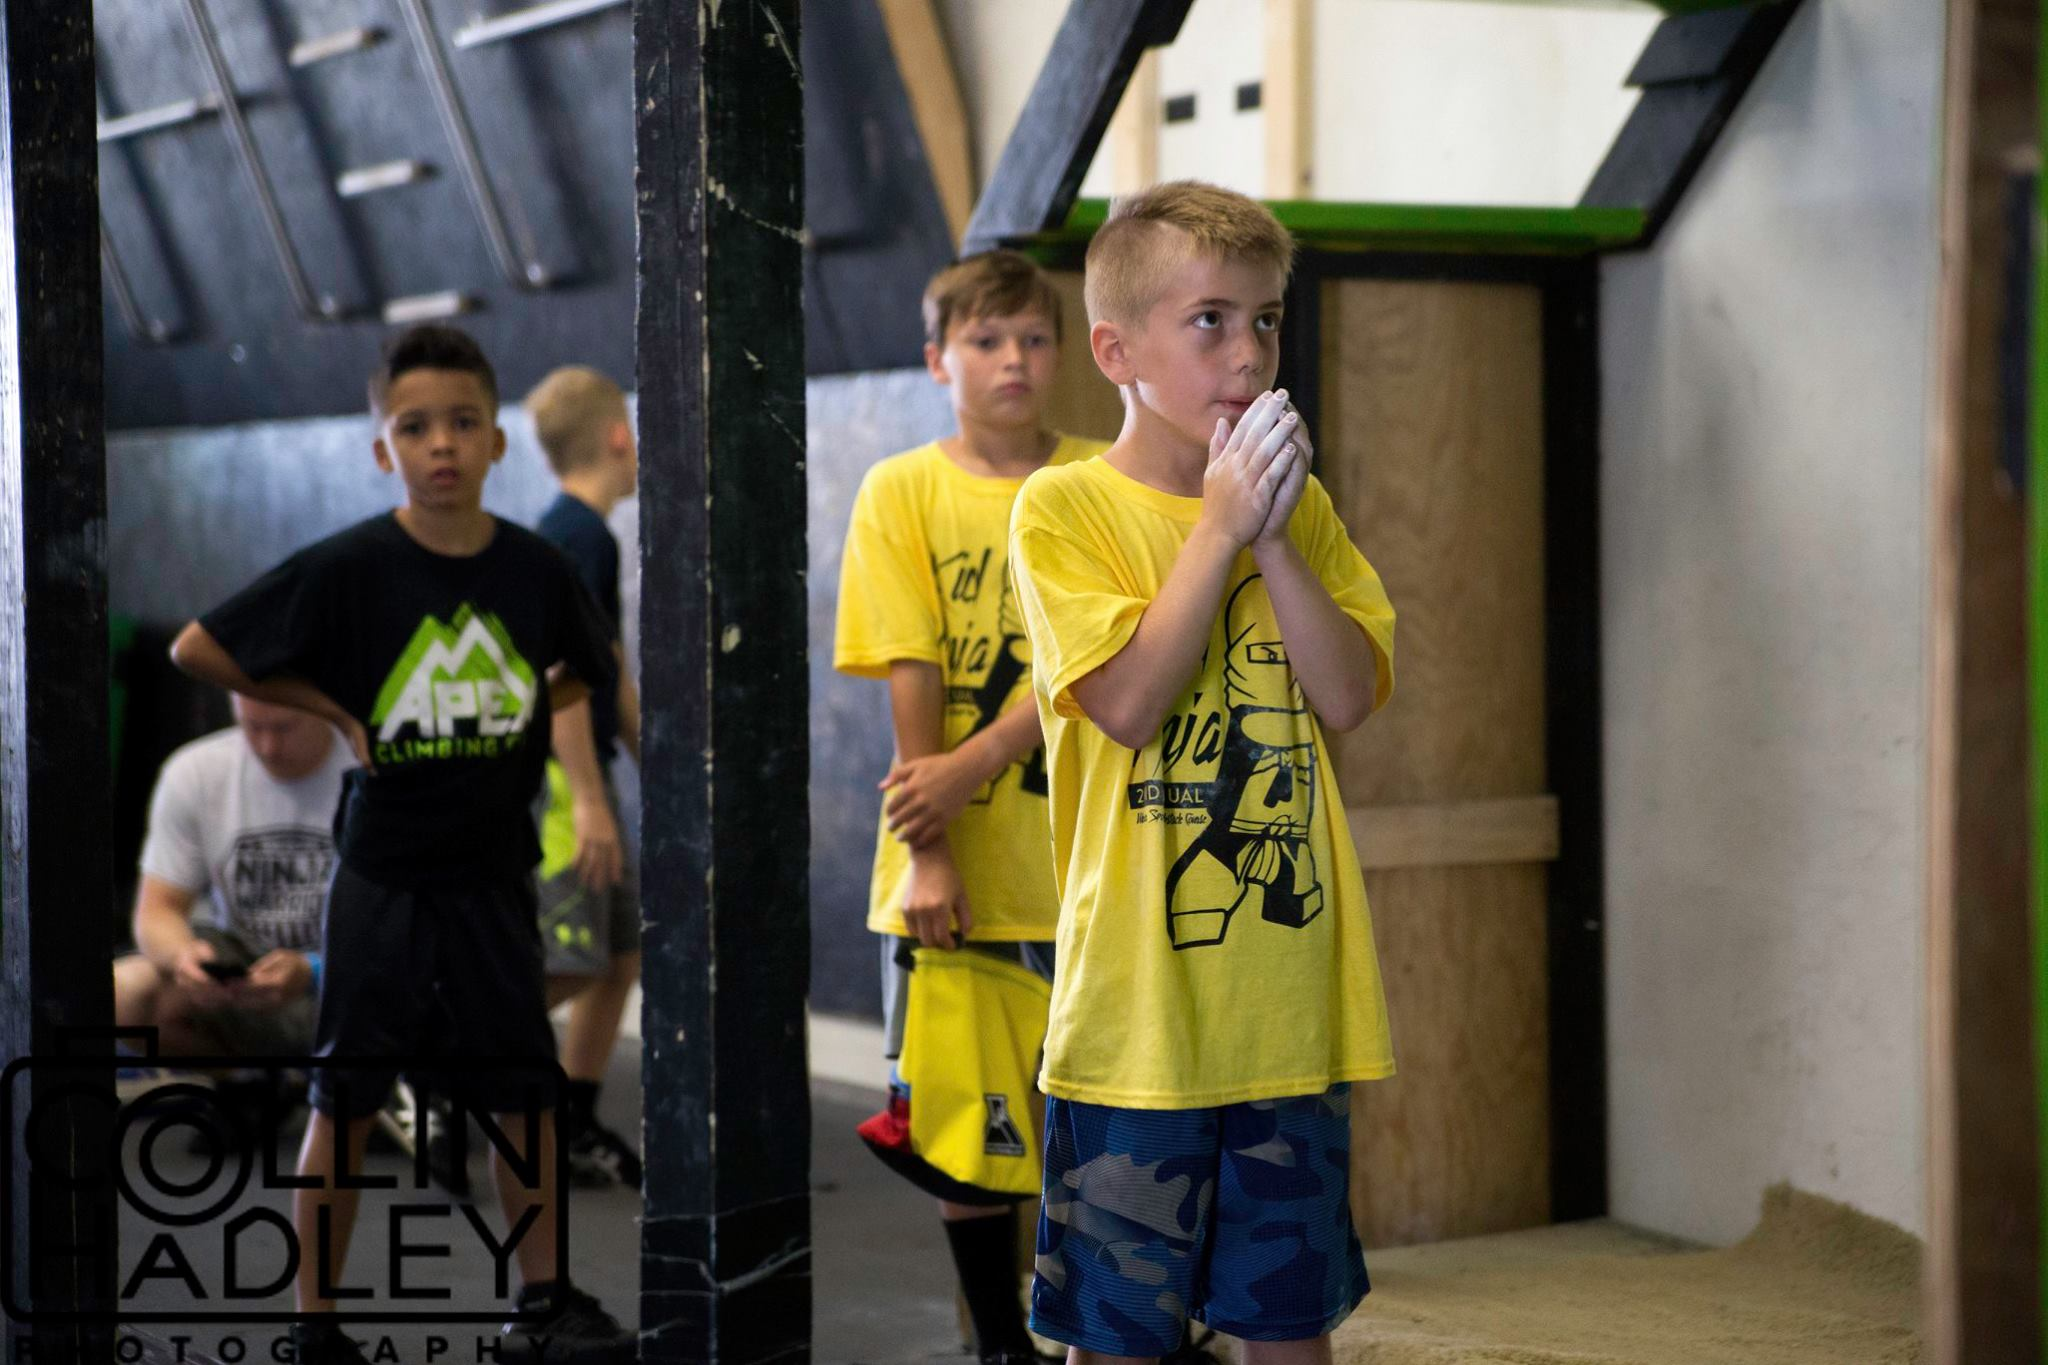 Warrior Sports Youth Comp 2017 3.jpg